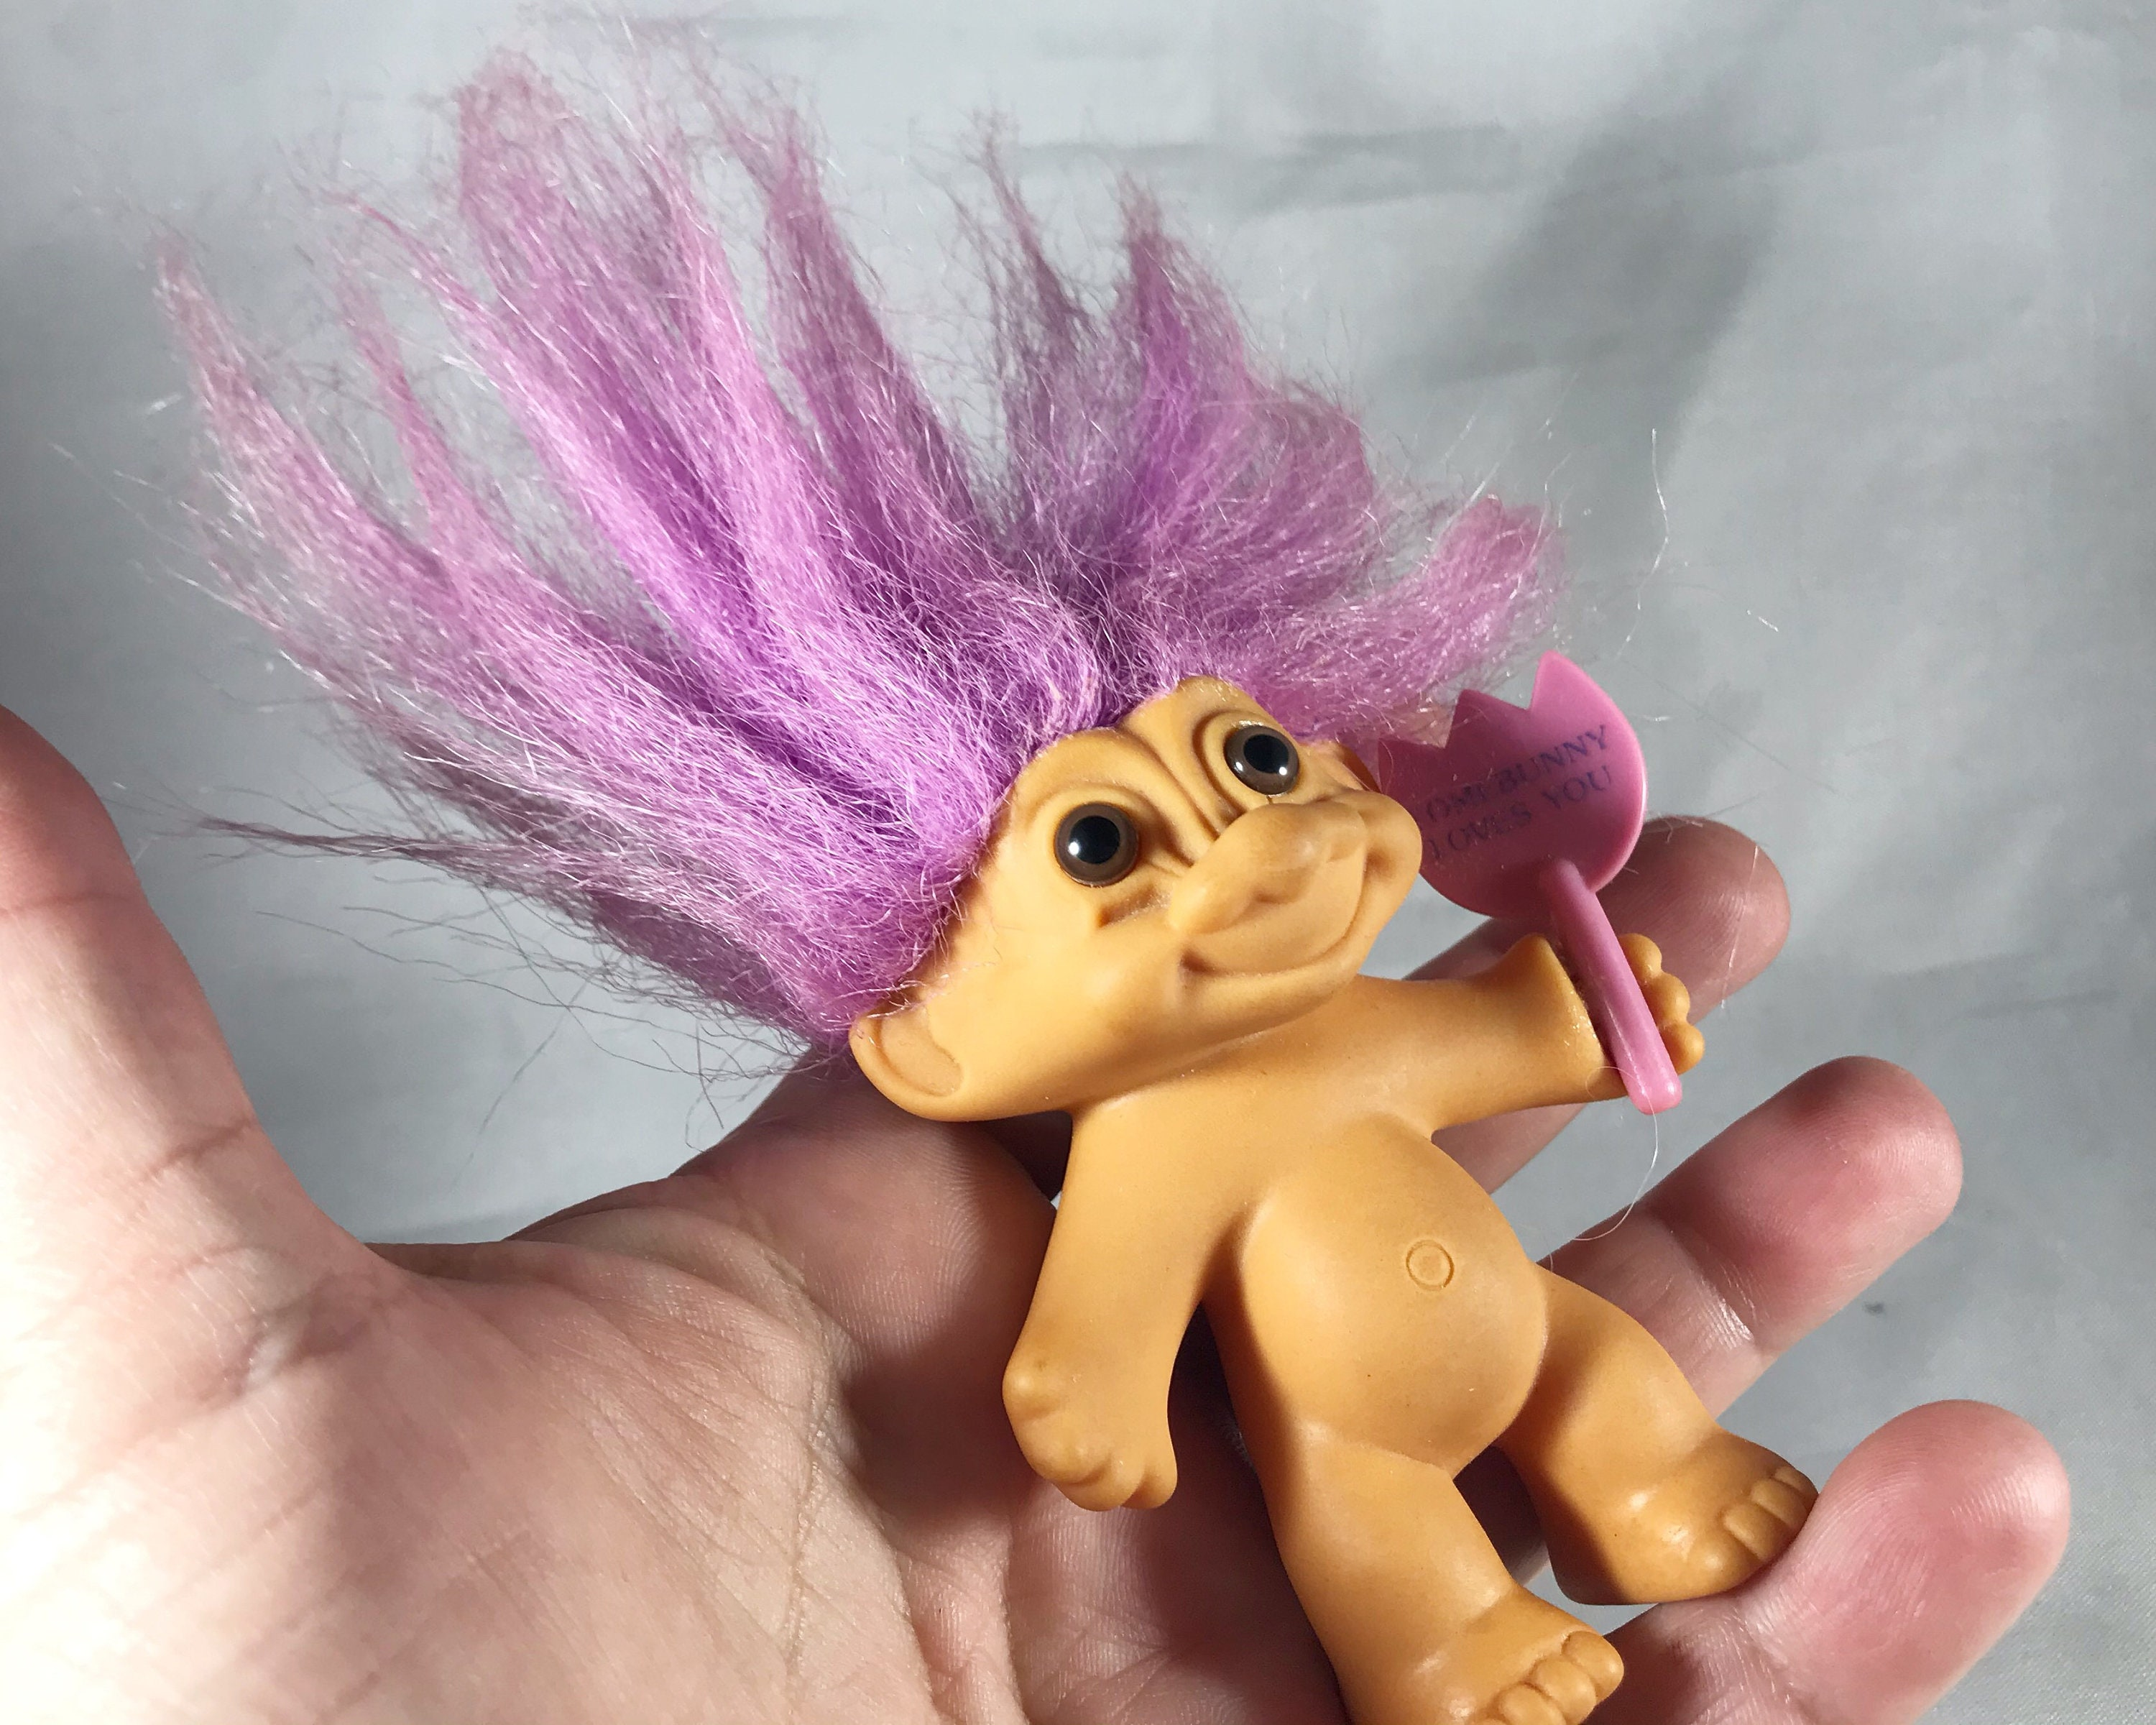 Vintage Russ Troll Doll - Some Bunny Loves You with Pink